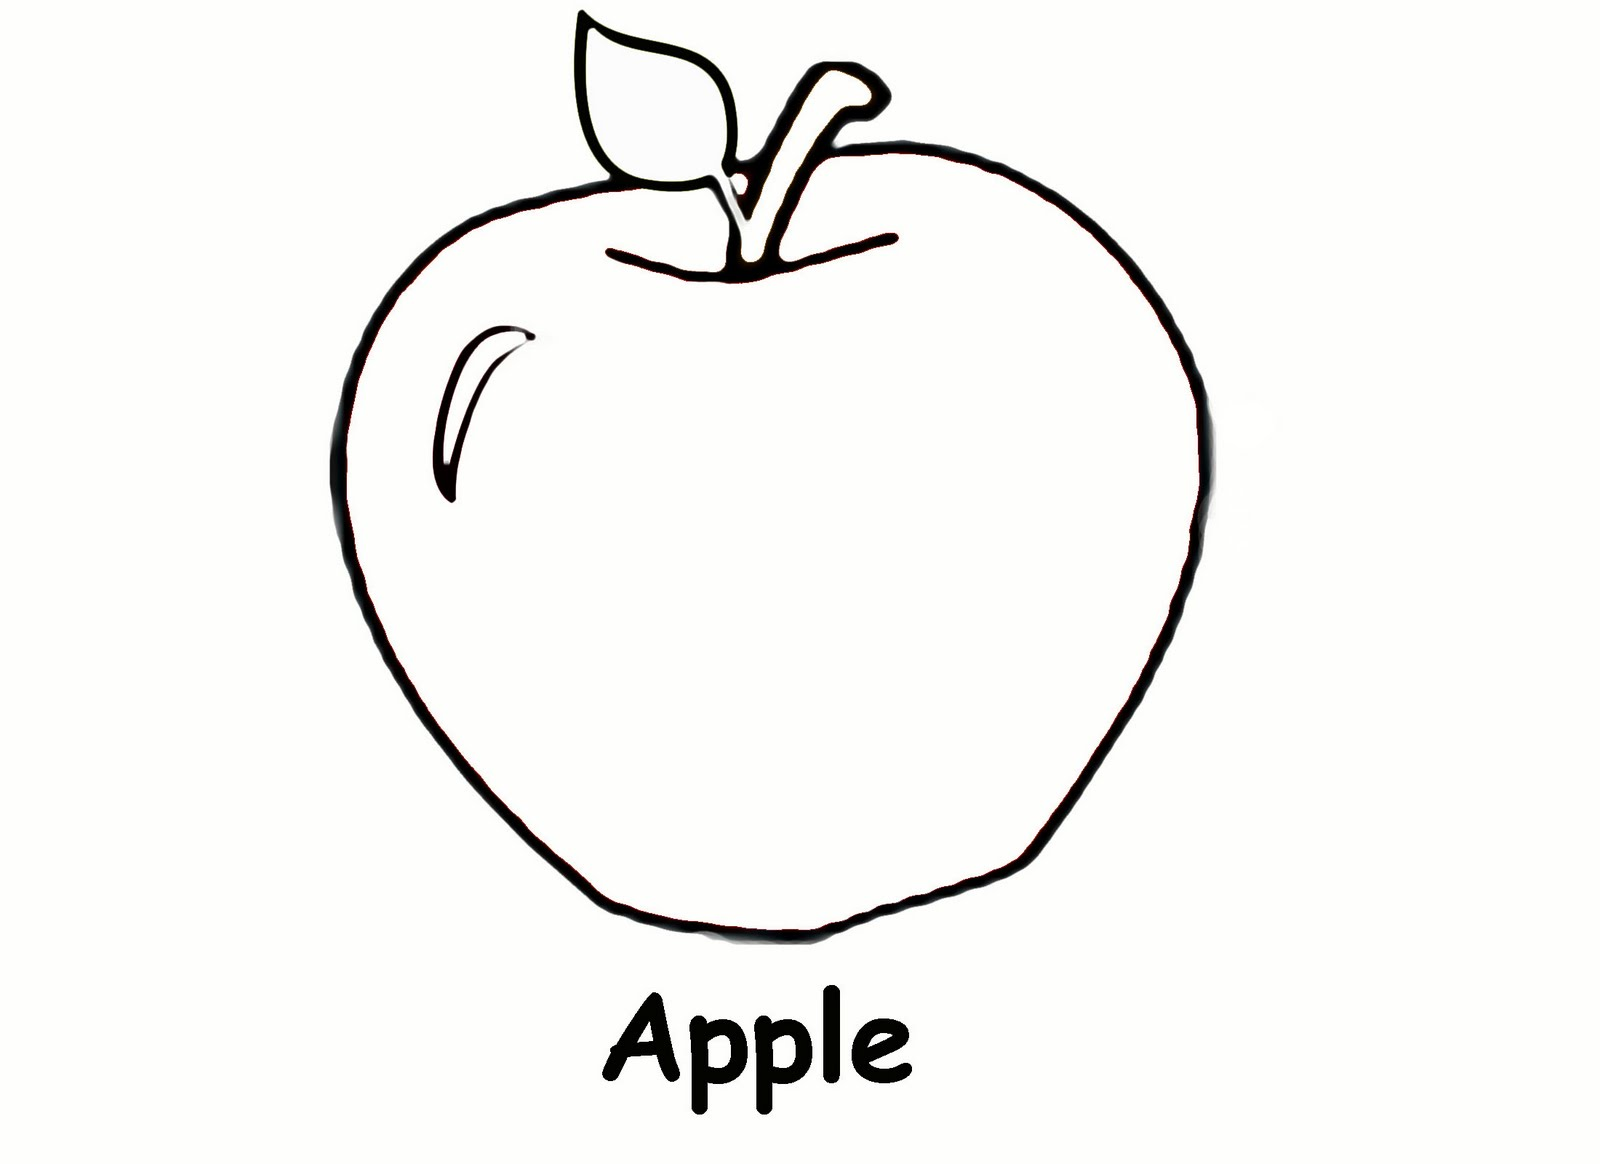 6 Best Images Of Apple Outline Printable Full Page